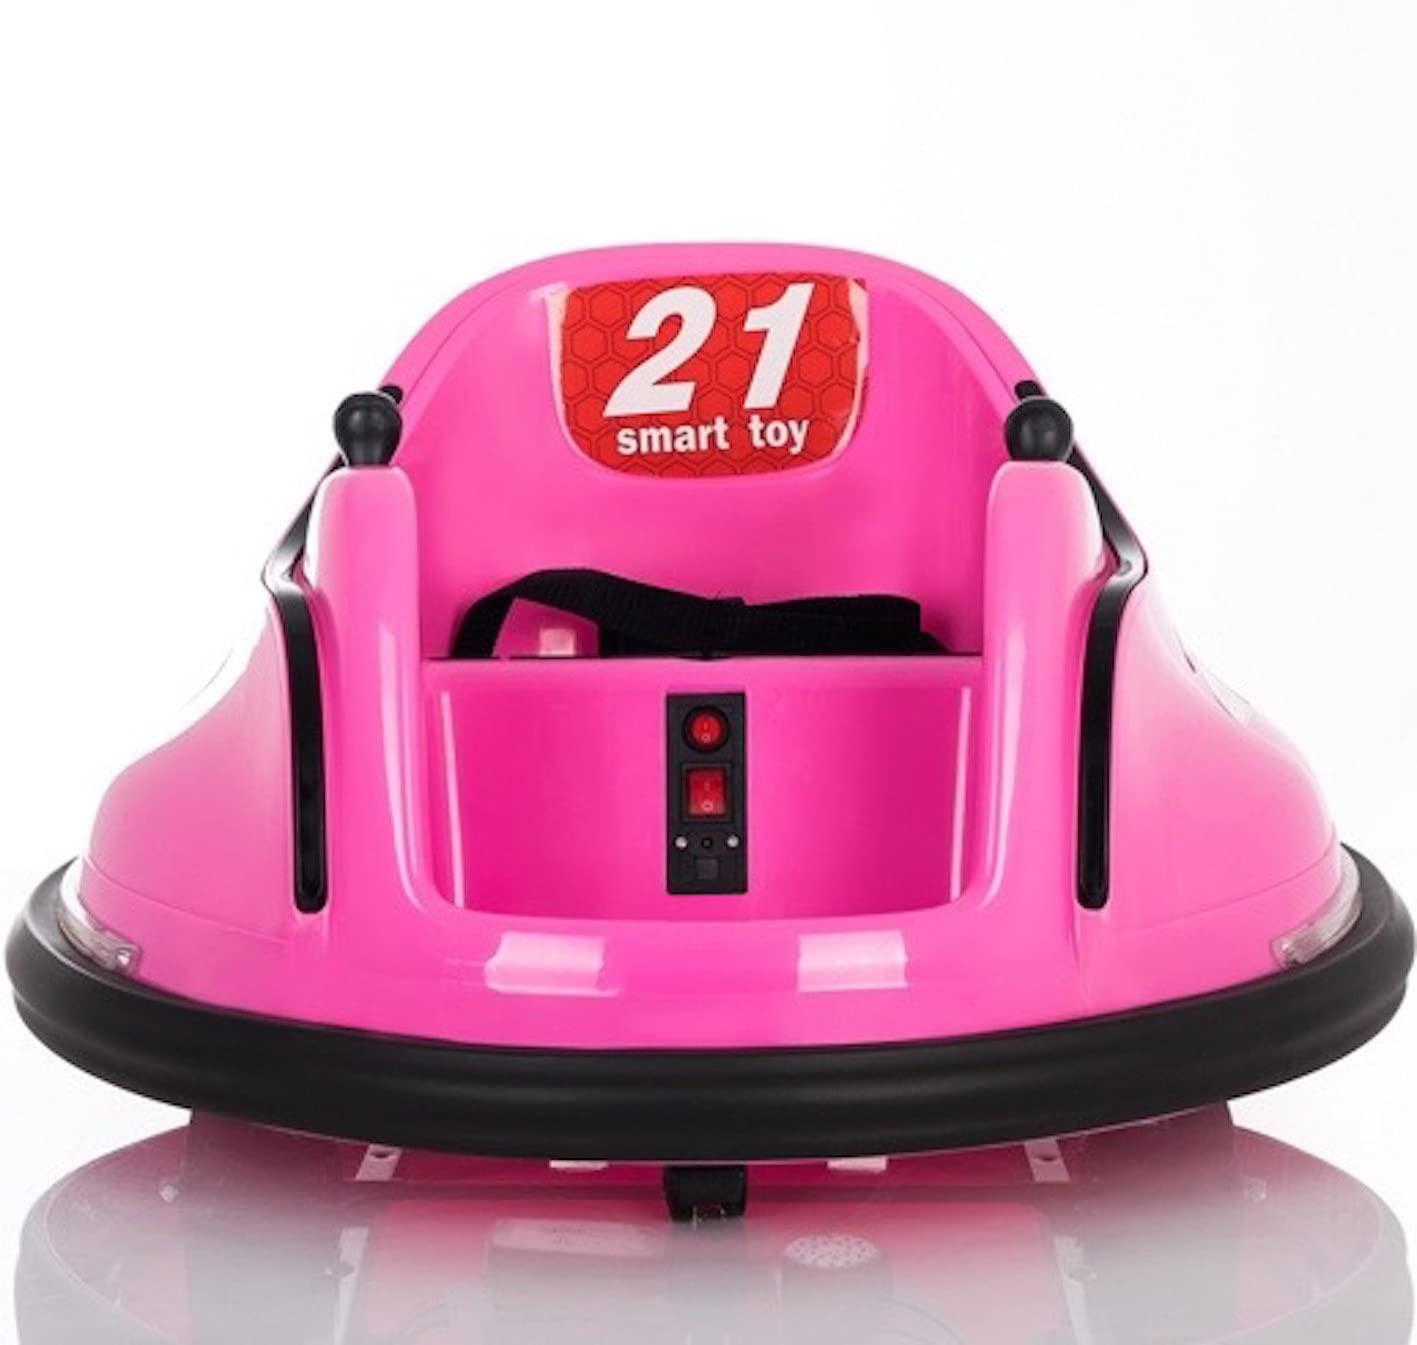 12V Children's Waltzer Car Battery Operated Electric Ride On Toy Pink